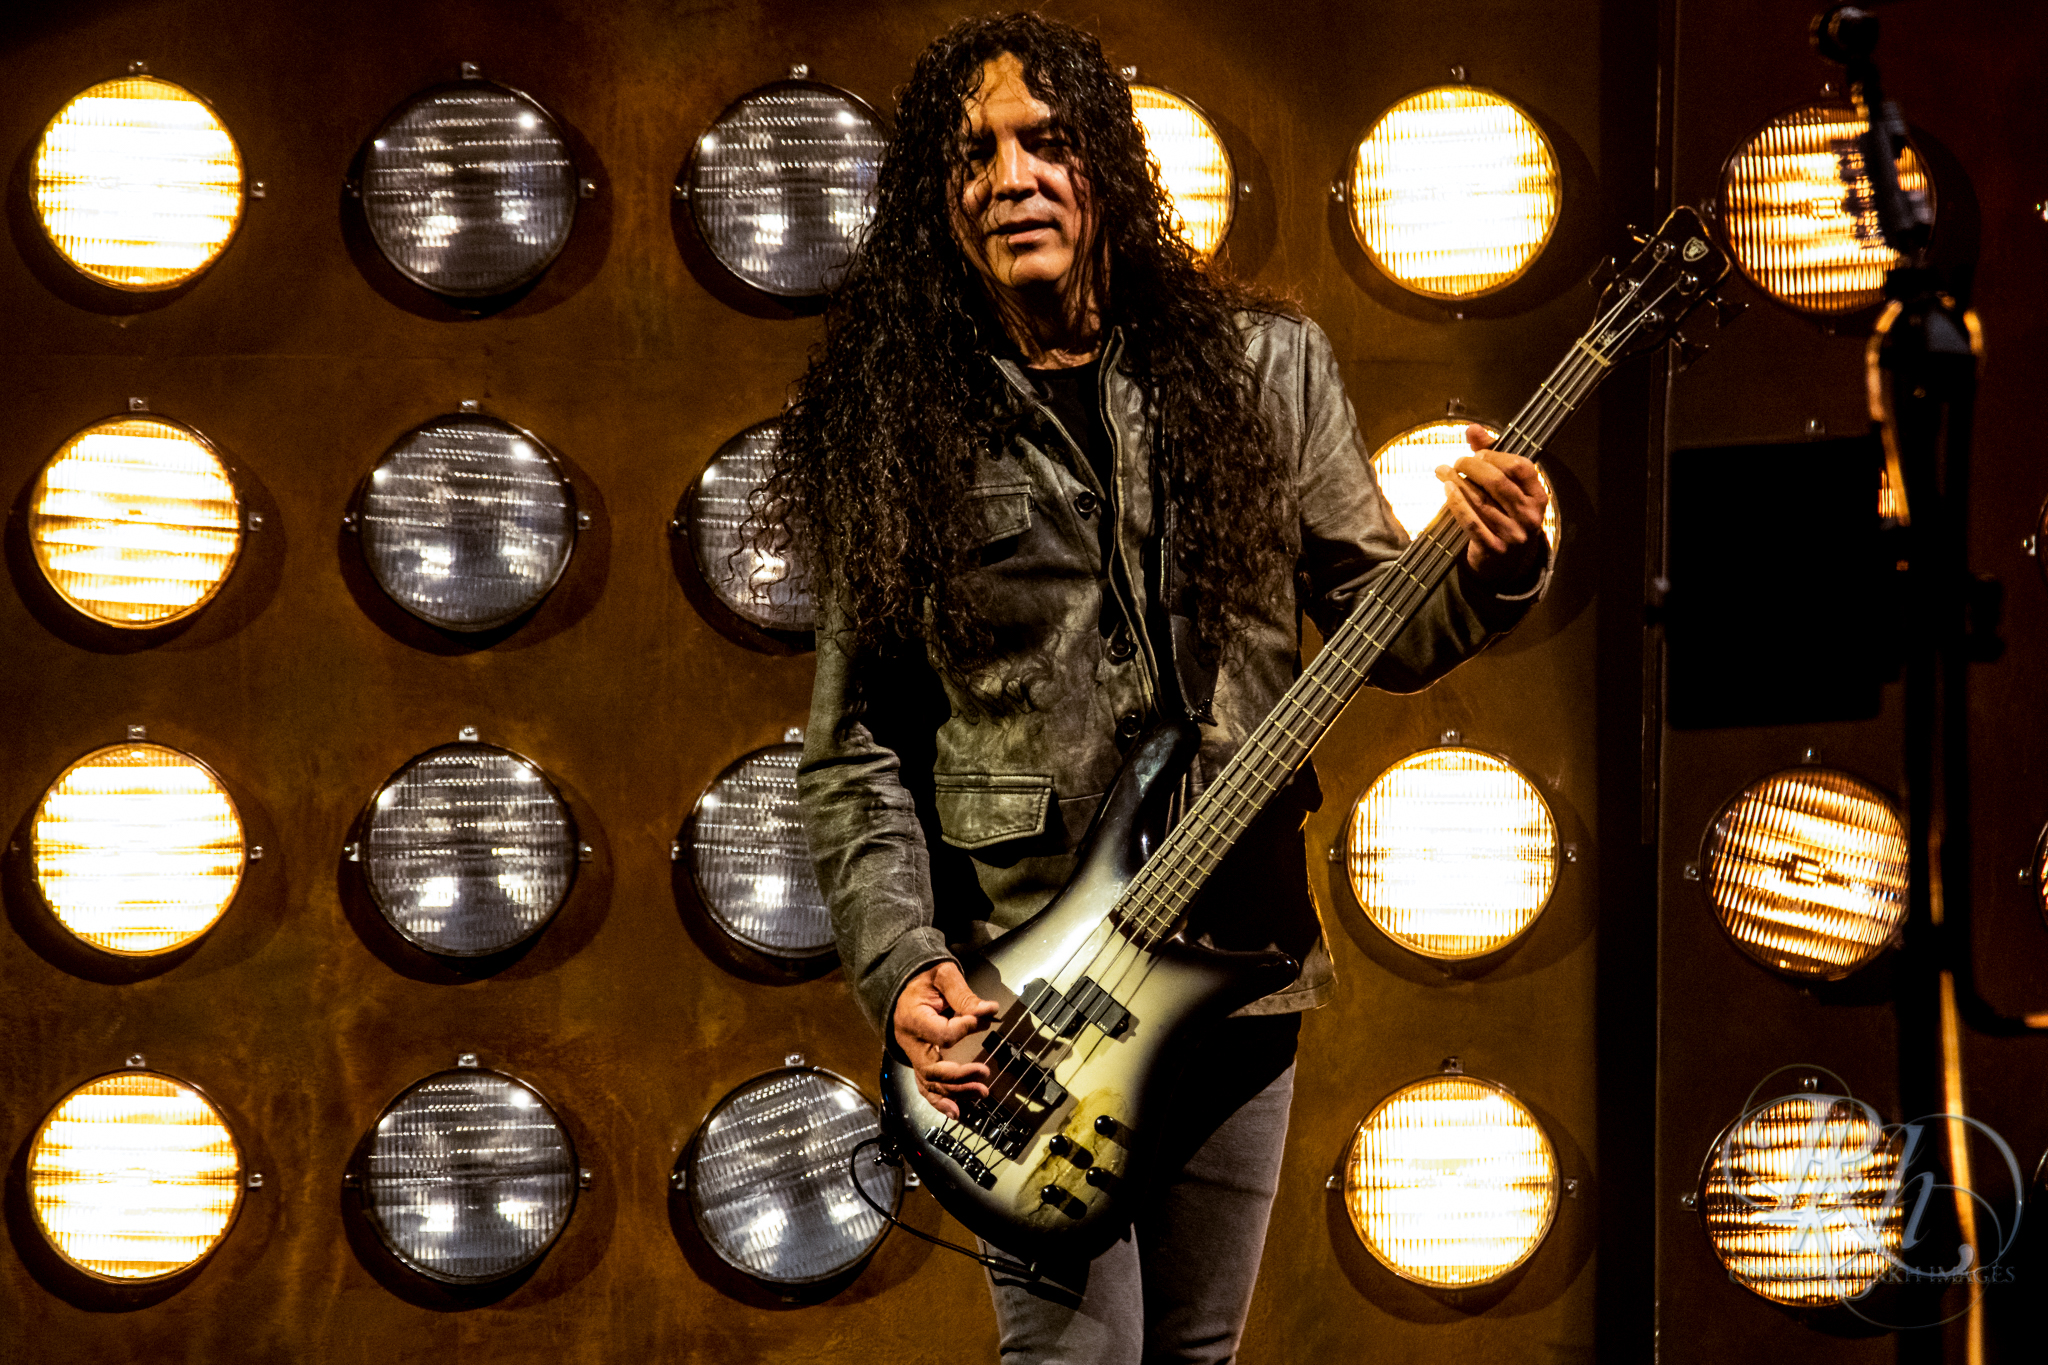 Alice in Chains - RKH Images - The Armory - Minneapolis, Minnesota  (14 of 15).jpg